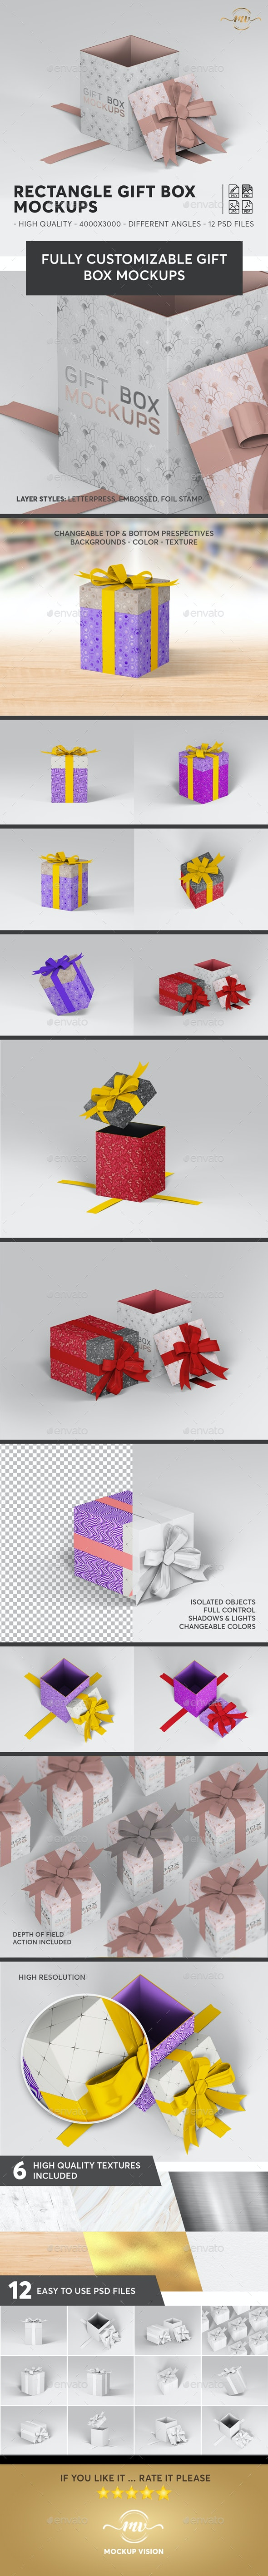 Gift Box Rectangle Mockups V.2 - Miscellaneous Packaging